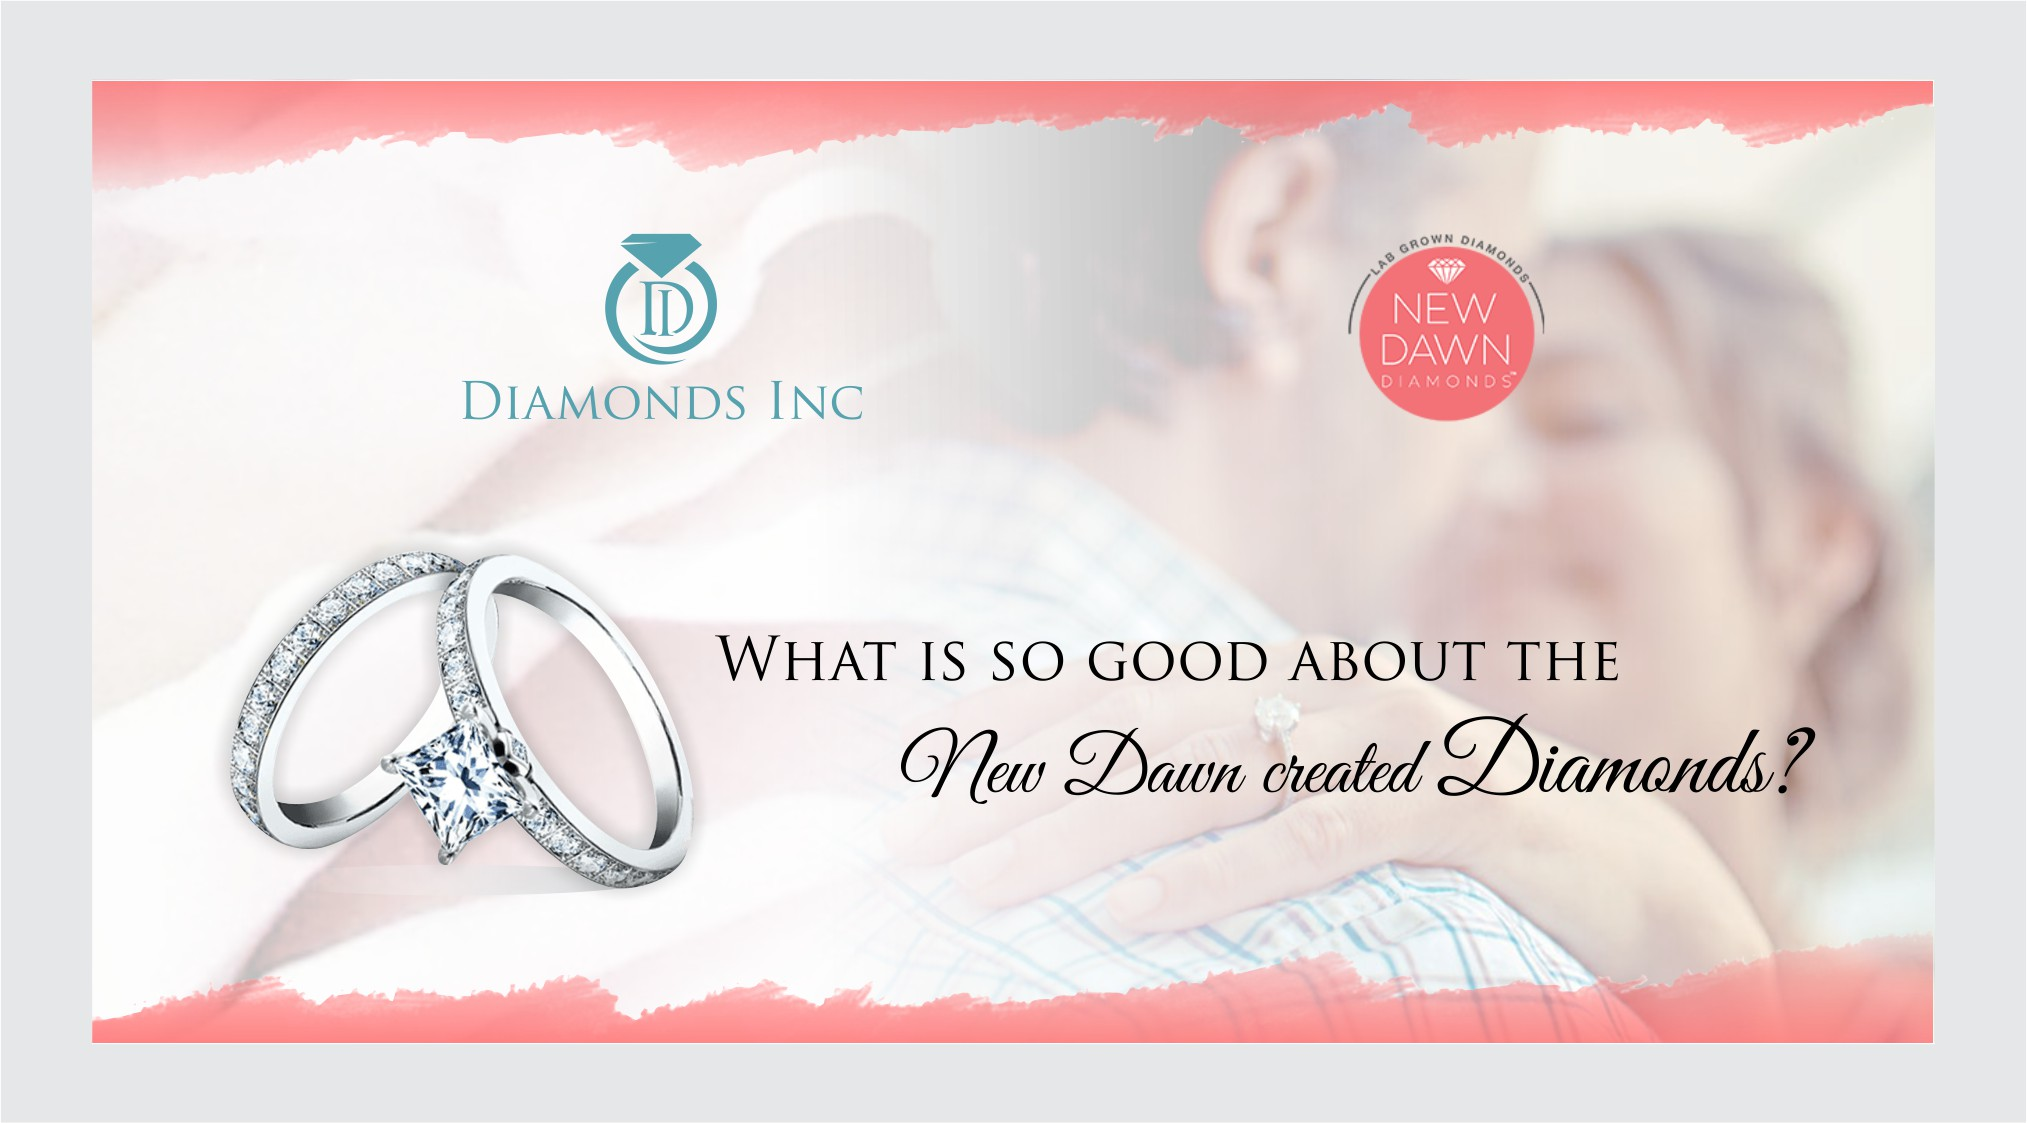 What is so good about New Dawn created Diamonds ?